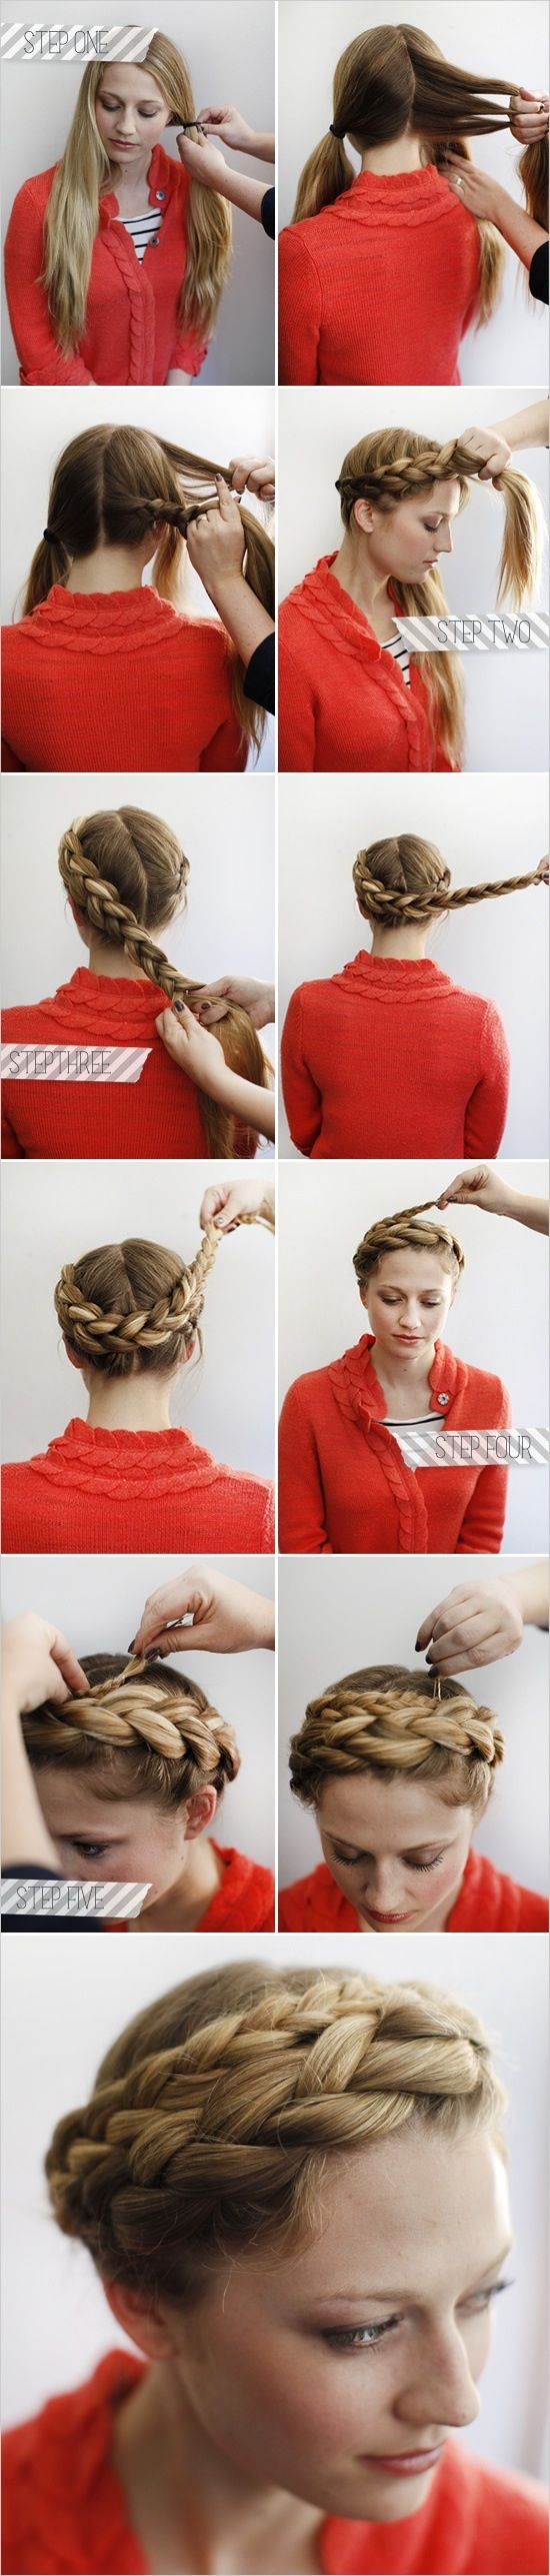 #DIY #Hairstyle #Tutorial